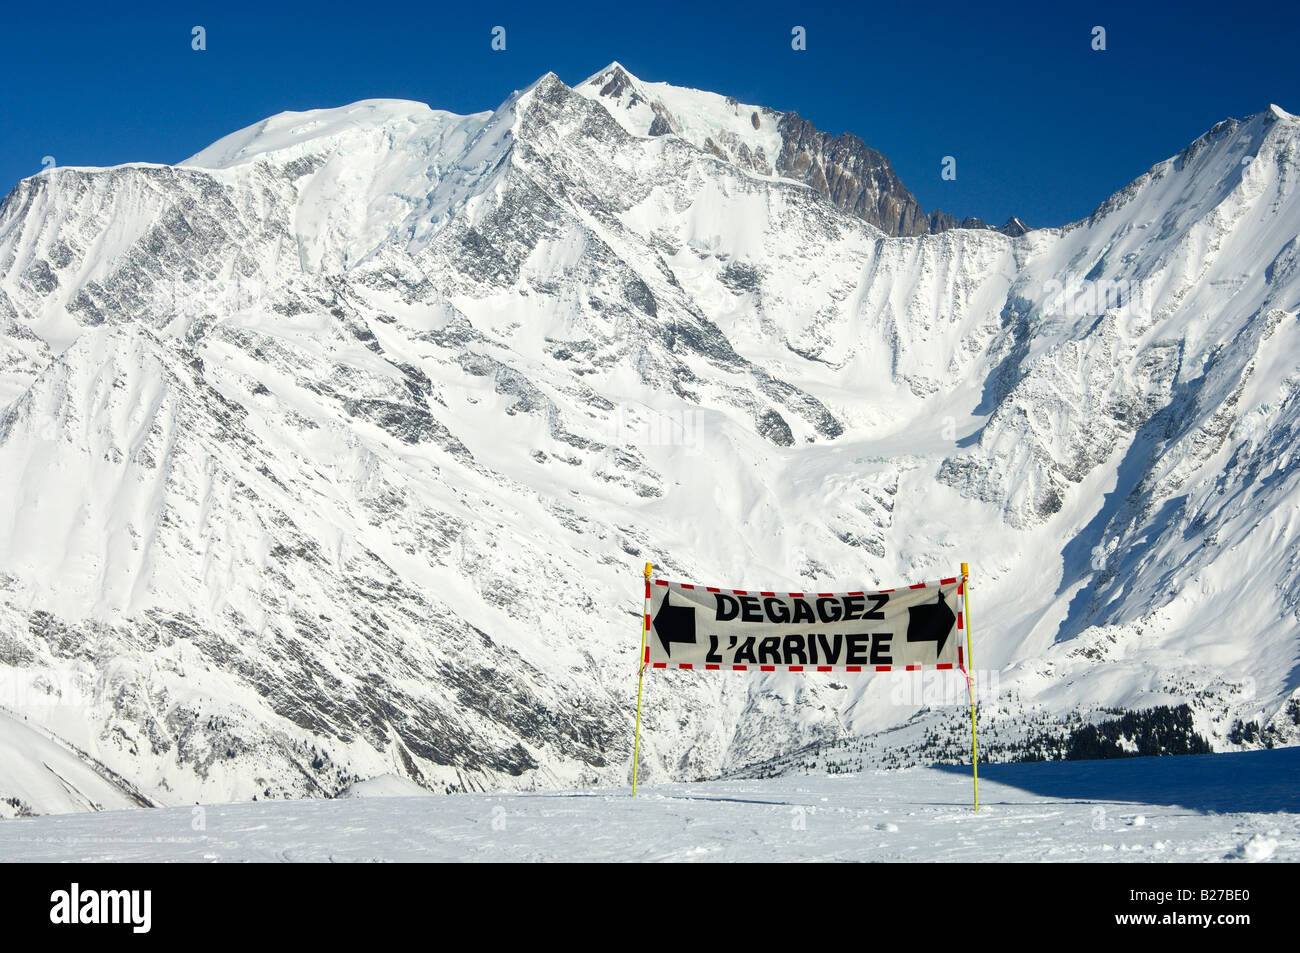 Sign requesting to keep free the arrival area of a chairlift, skiing area Saint Gervais, Haute Savoie, France - Stock Image